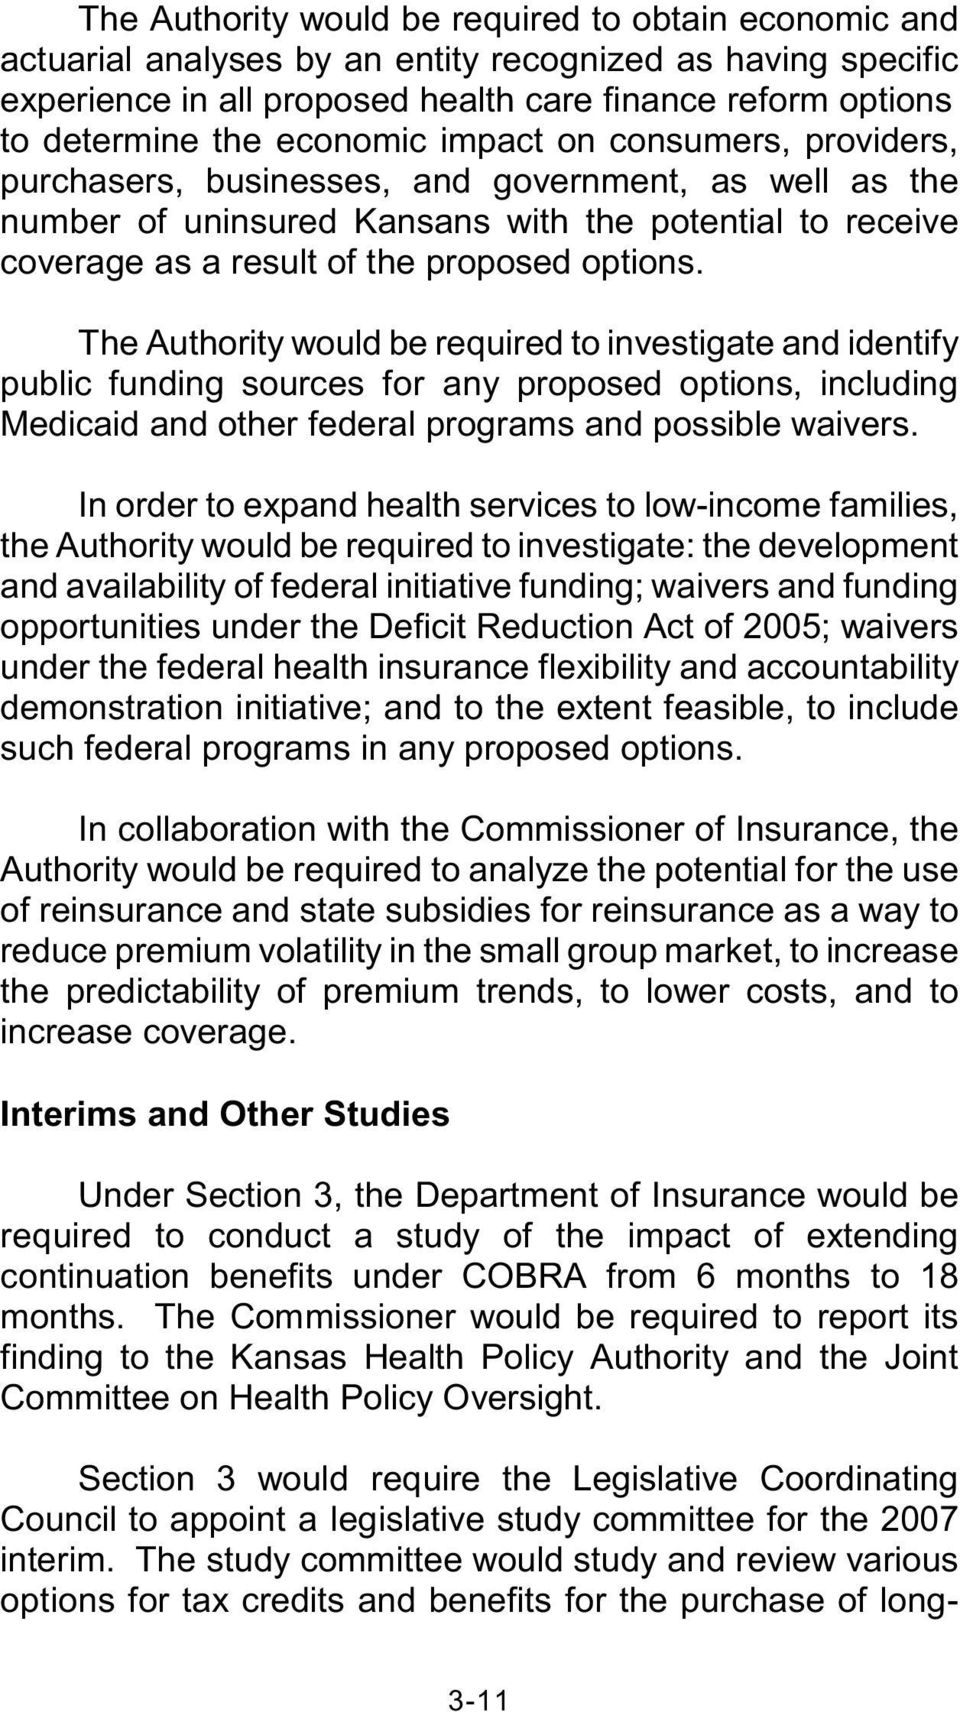 The Authority would be required to investigate and identify public funding sources for any proposed options, including Medicaid and other federal programs and possible waivers.